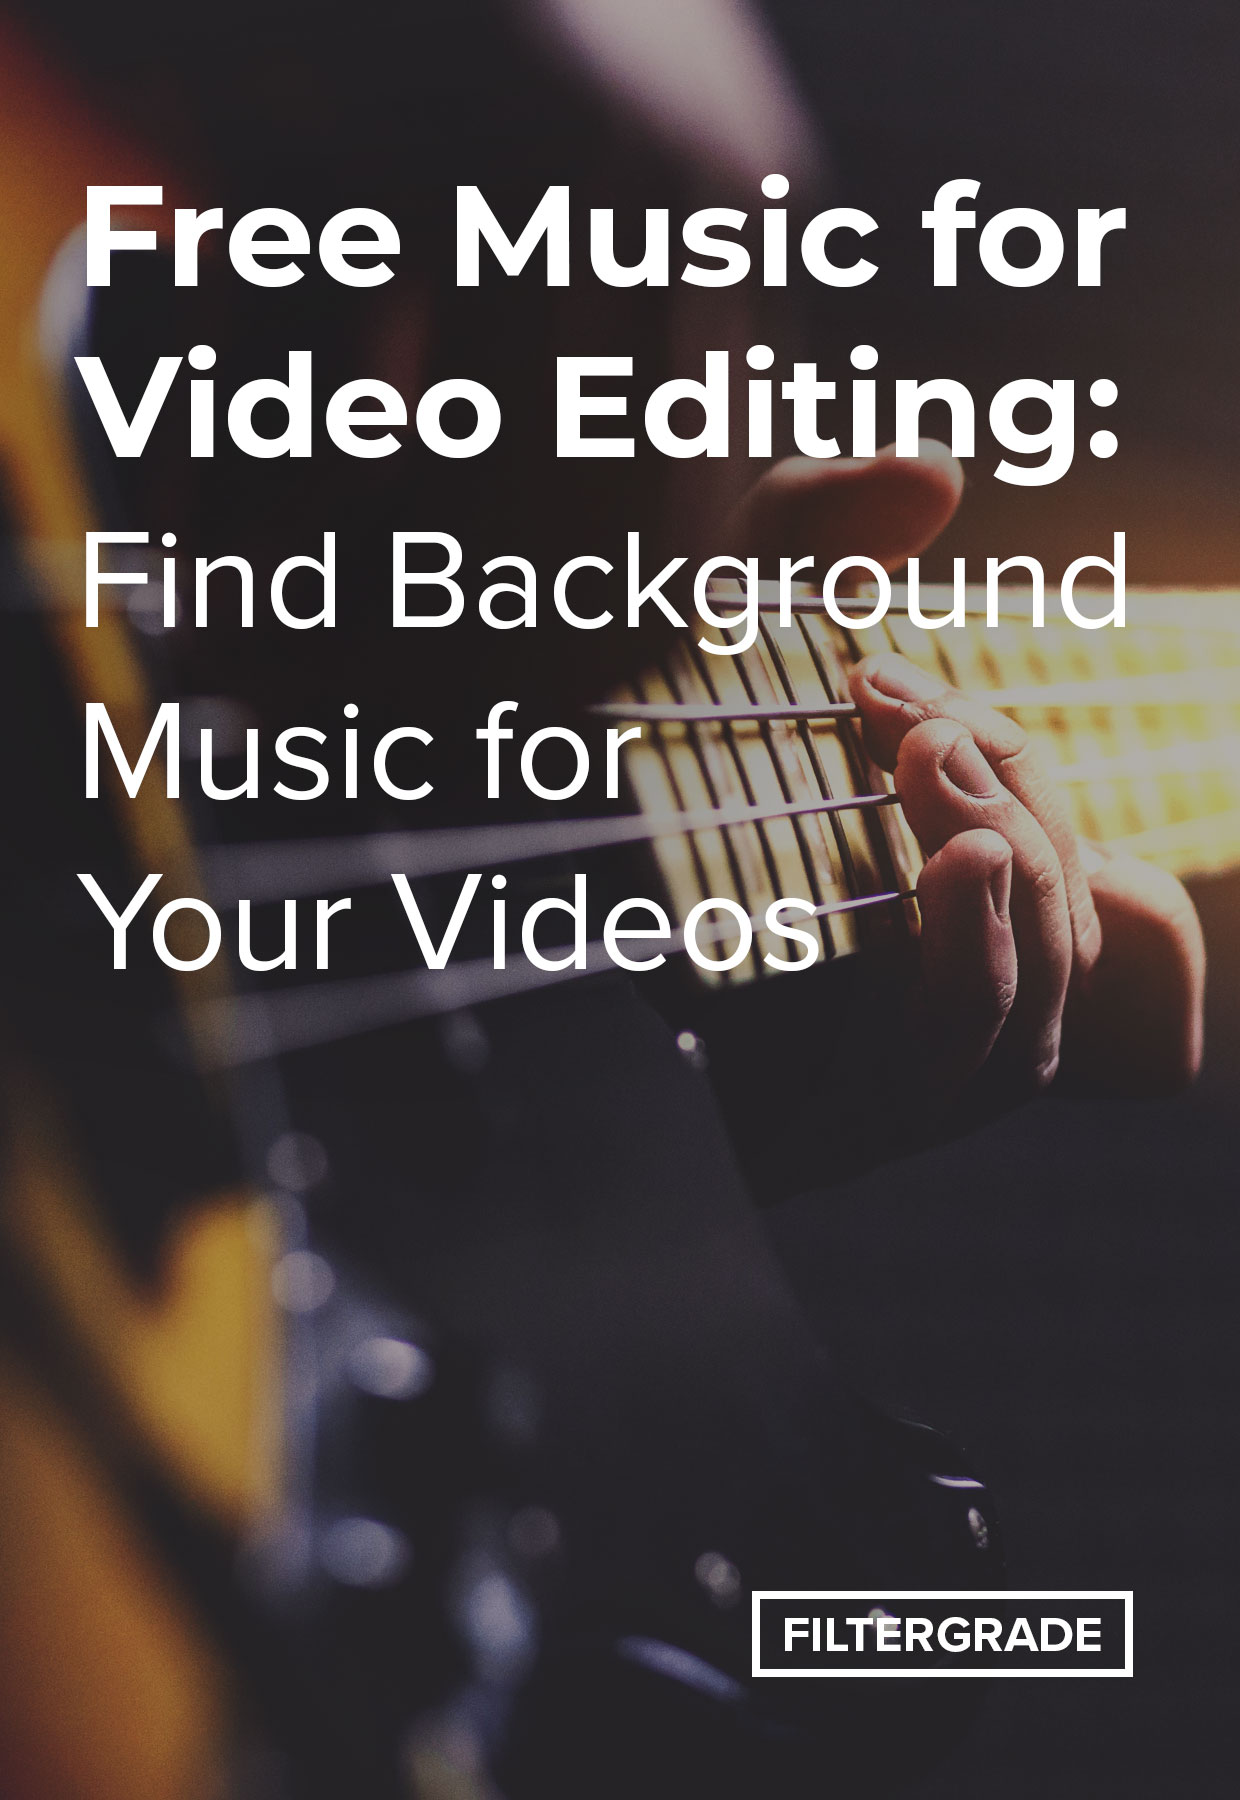 Free Music for Video Editing: Find Background Music for Your Videos